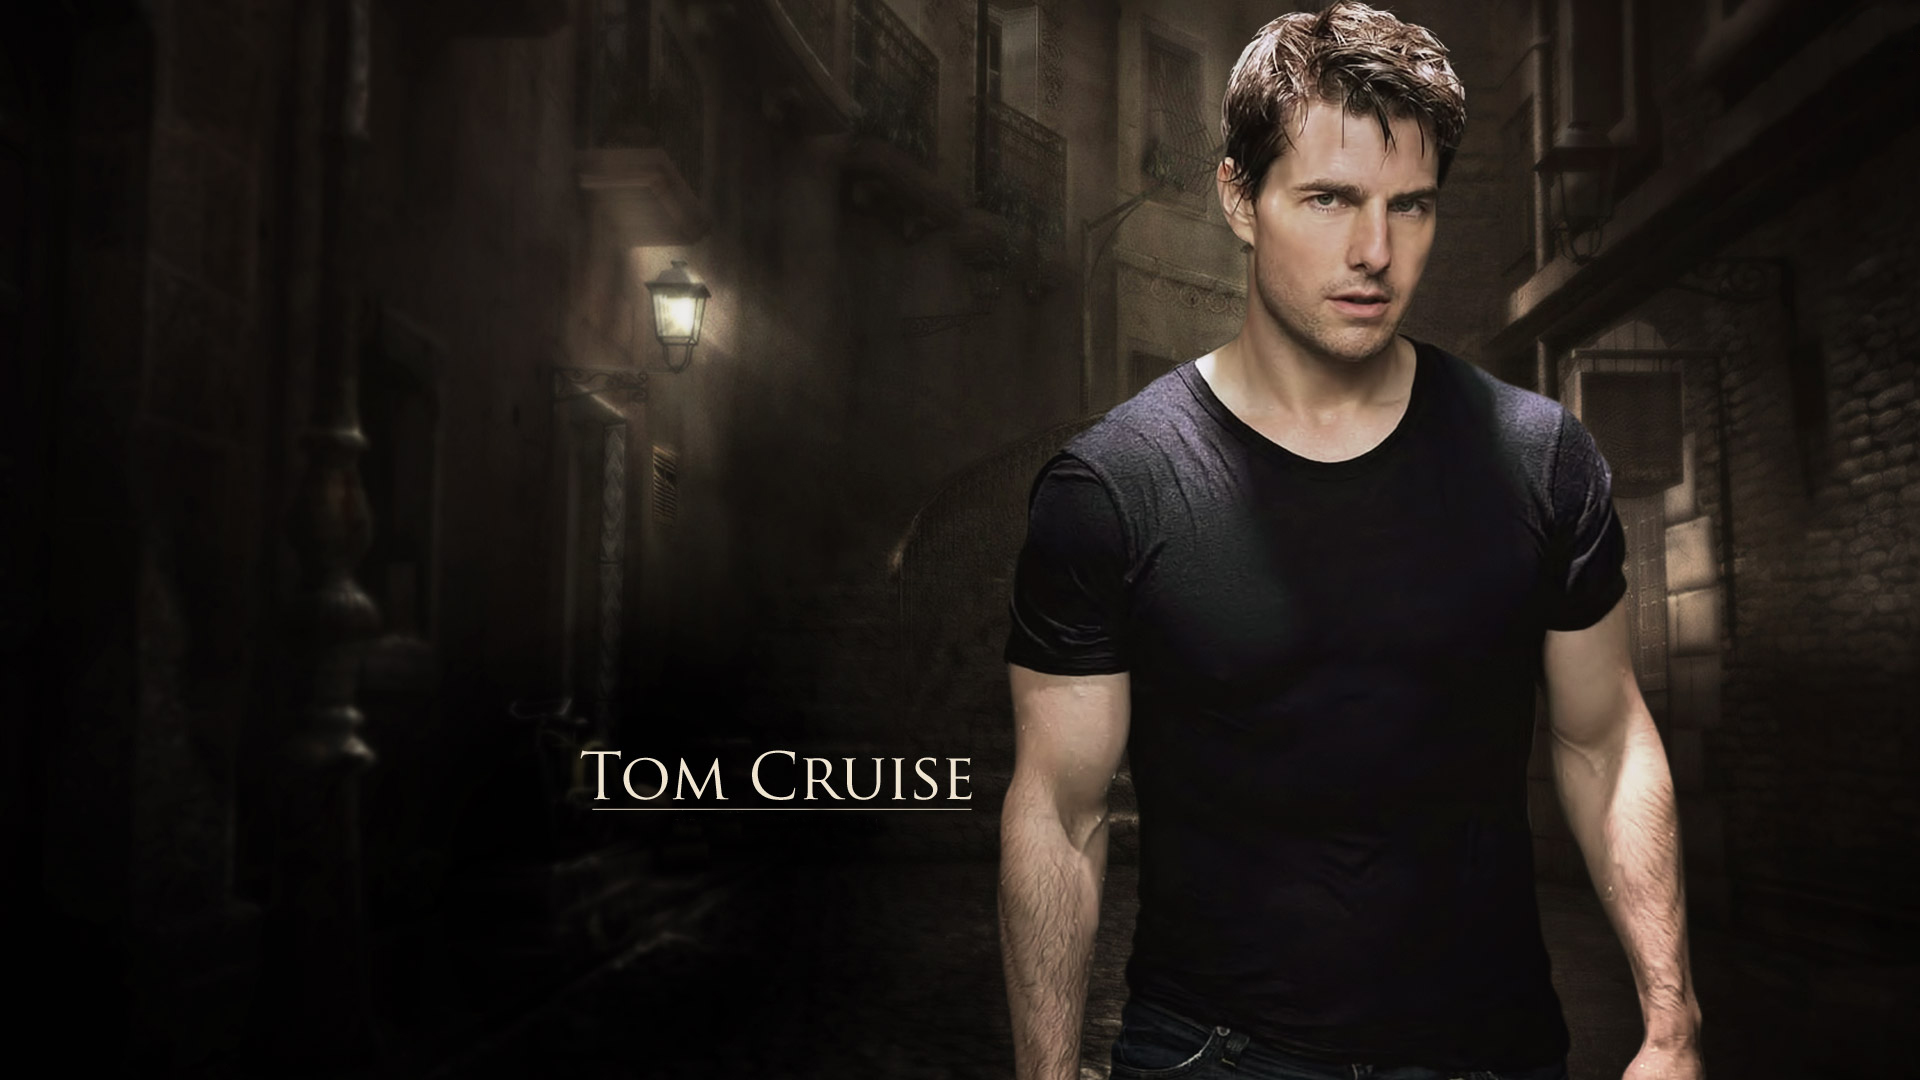 Tom Cruise images 49 wallpapers   Qularicom 1920x1080